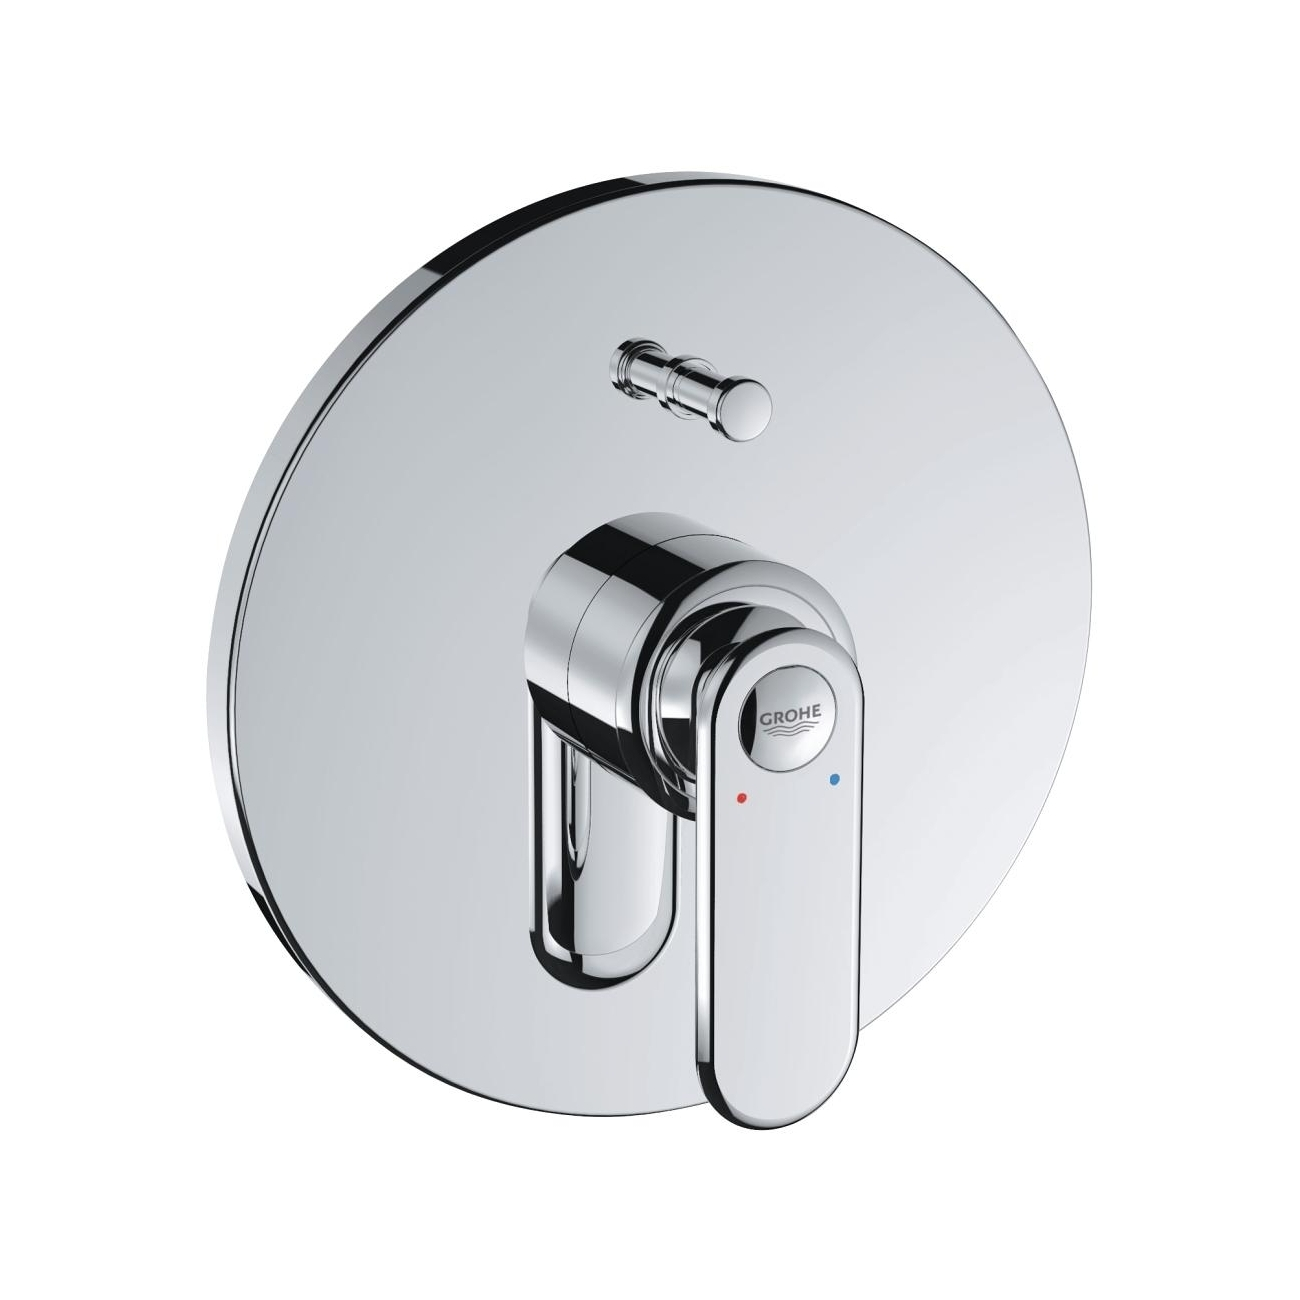 GROHE VERIS Bath-shower mixer with diverter - TattaHome